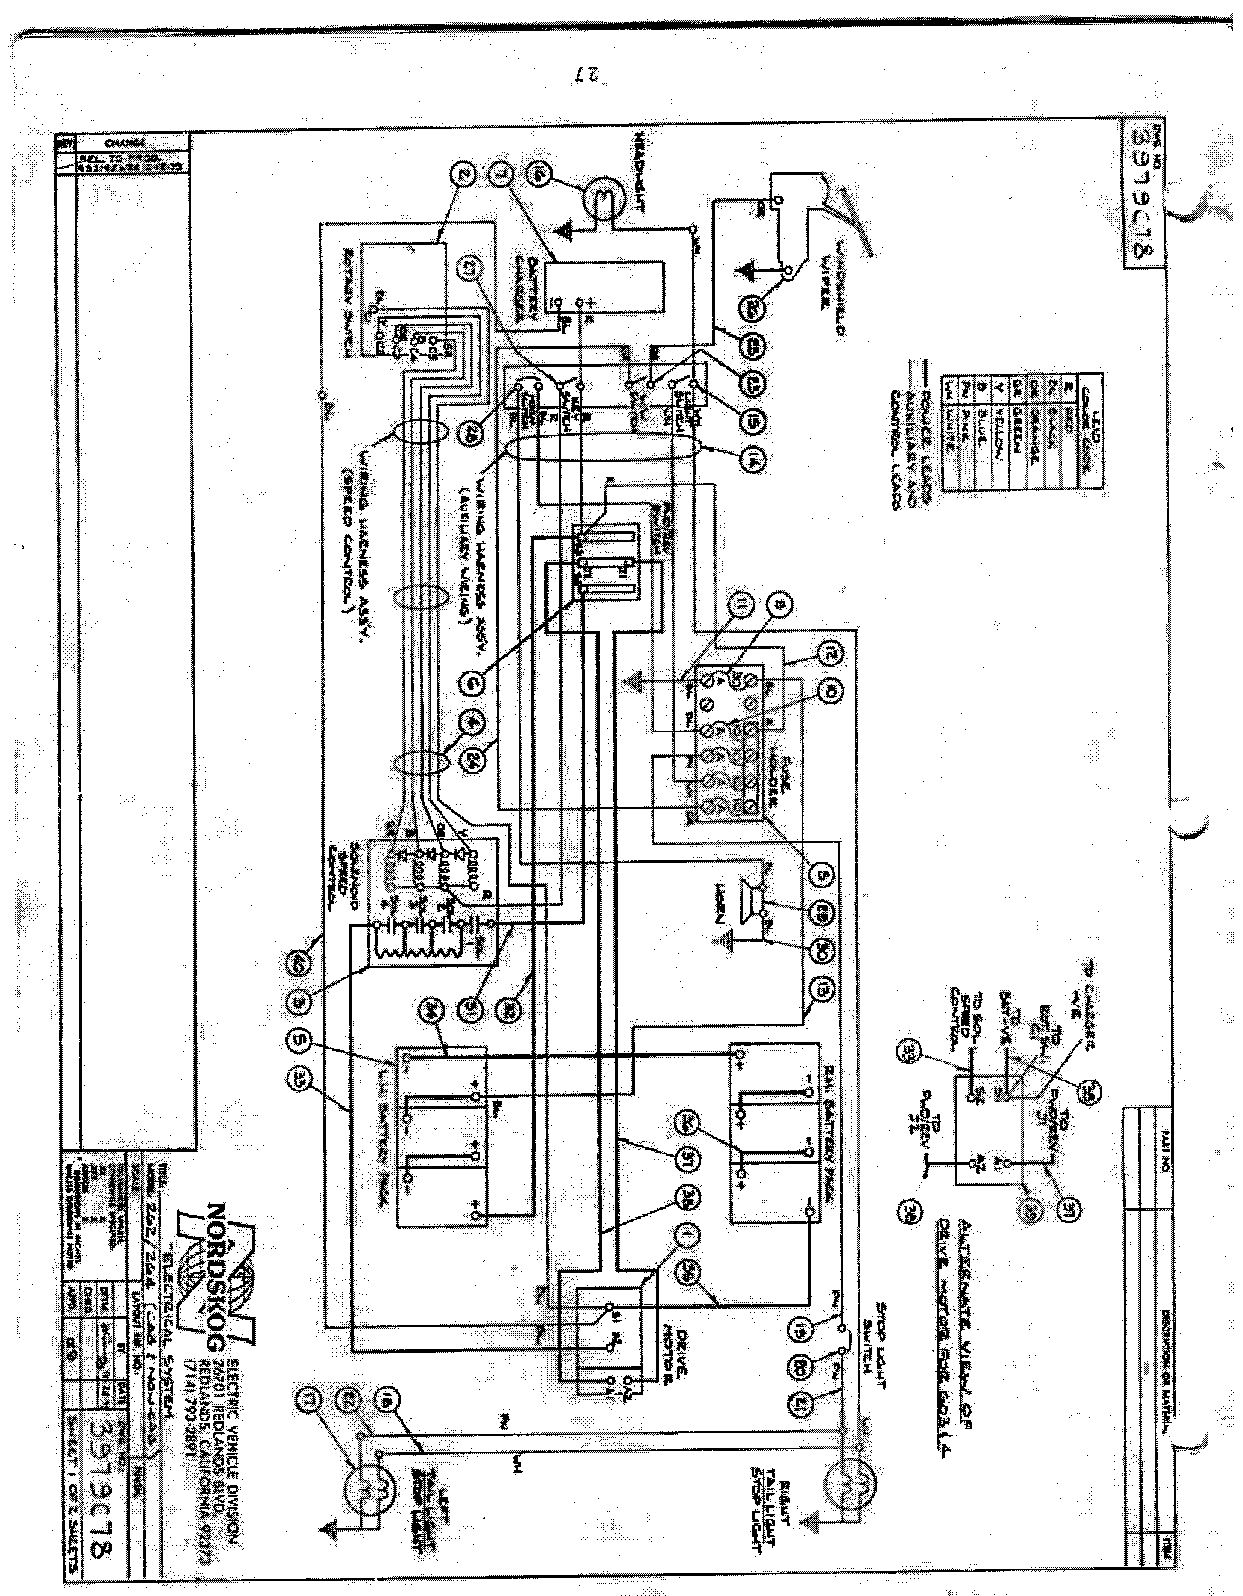 hight resolution of westinghouse golf cart wiring diagram 37 wiring diagram westinghouse golf cart restoration marketeer golf cart wiring